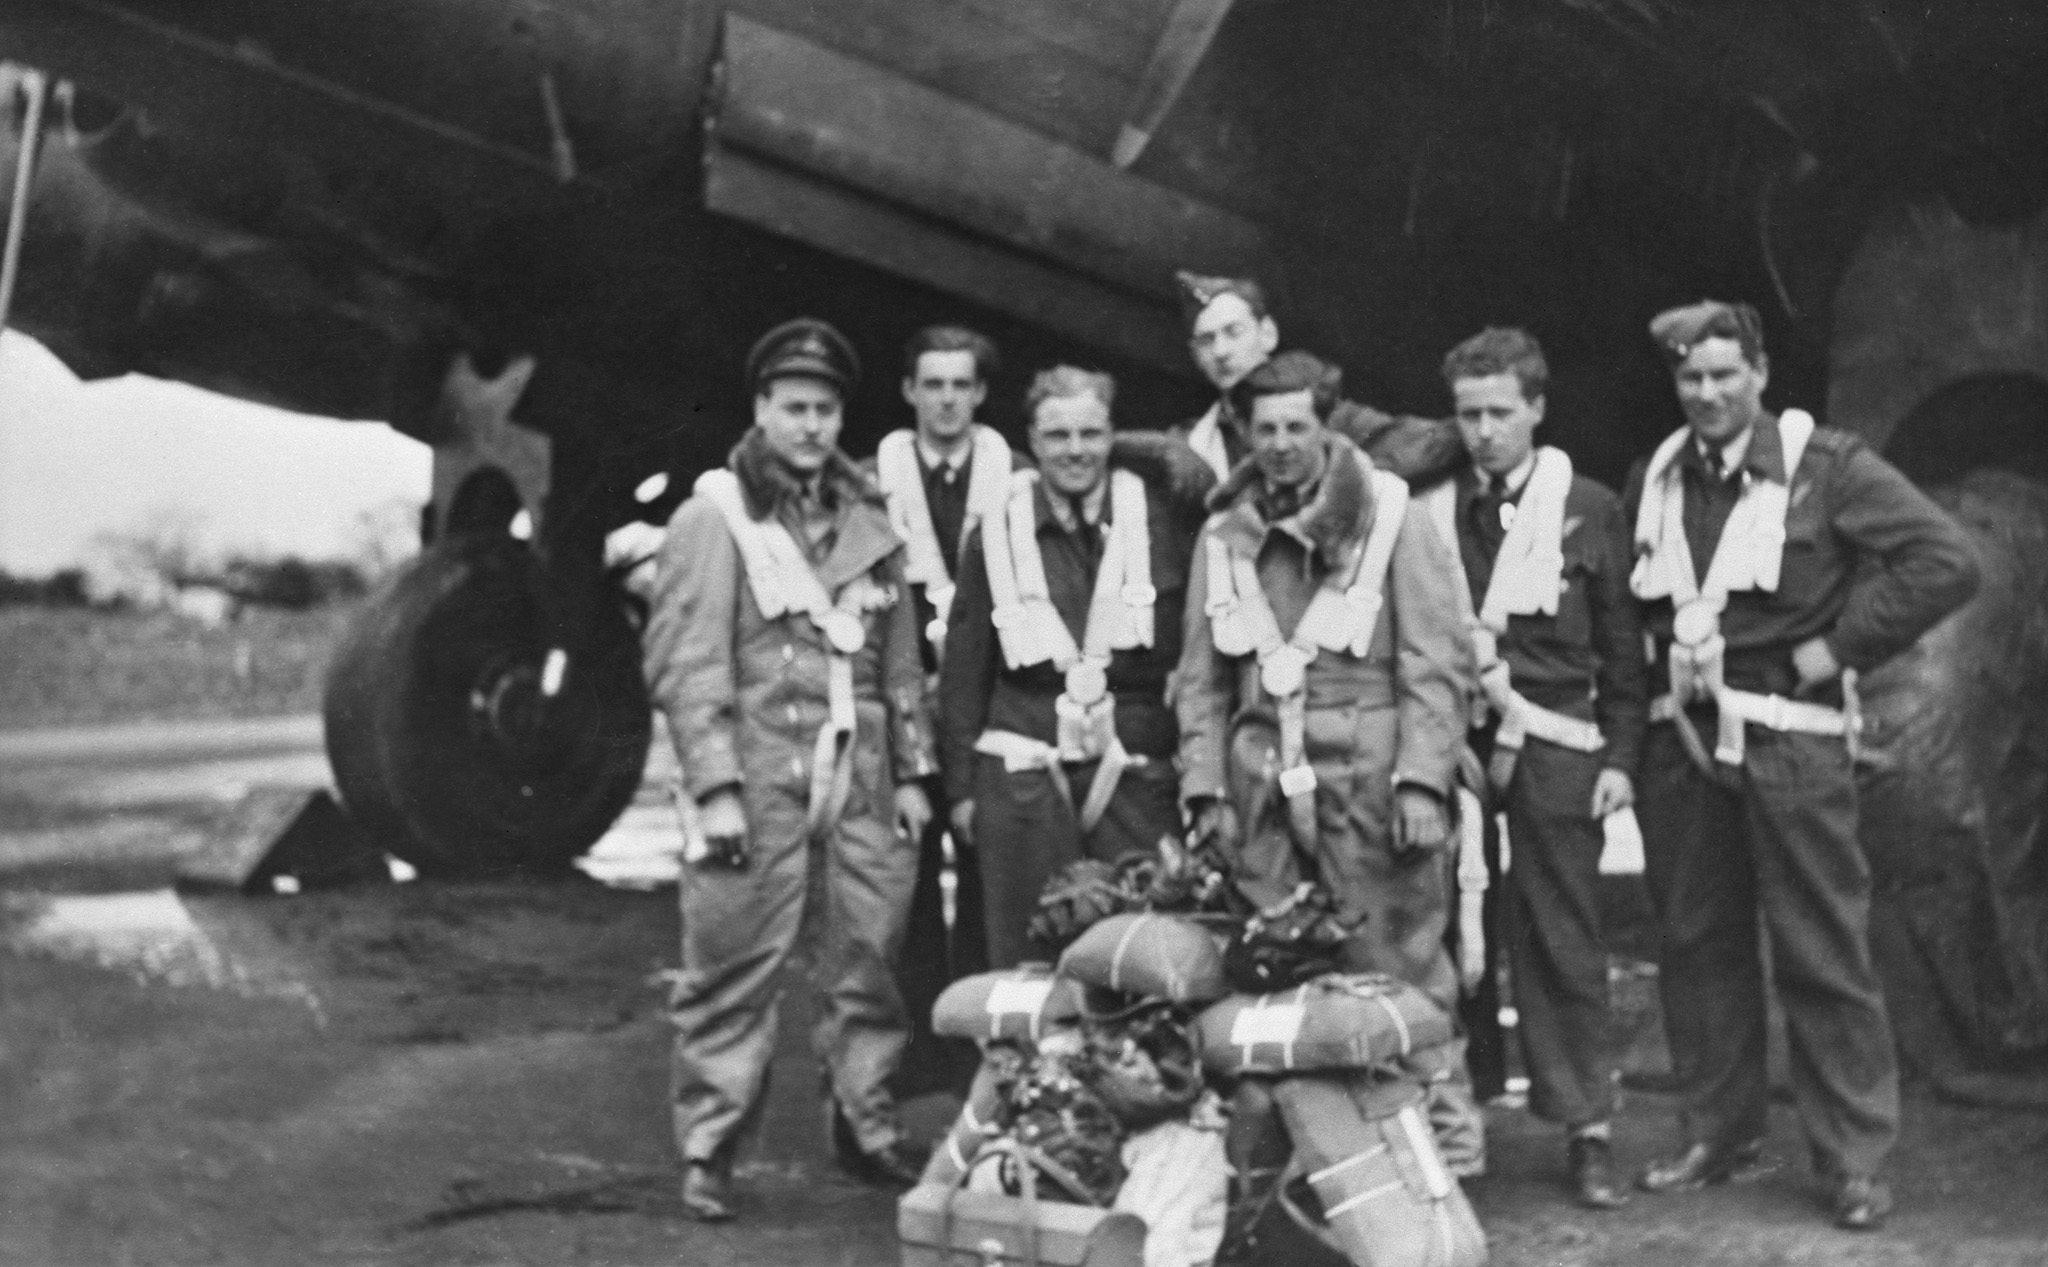 The crew of Lancaster KB726, code named VR-A, from left to right: Flying Officer Pat Brophy (rear gunner), Pilot Officer Jim Kelly (wireless operator), Flight Sergeant Roy Vigars (flight engineer), Flying Officer Art de Breyne (pilot), Pilot Officer Andrew Mynarski (mid-upper gunner), Pilot Officer Jack Friday (bomb aimer) and Flying Officer Bob Bodie (navigator). PHOTO: DND Archives, PL38265